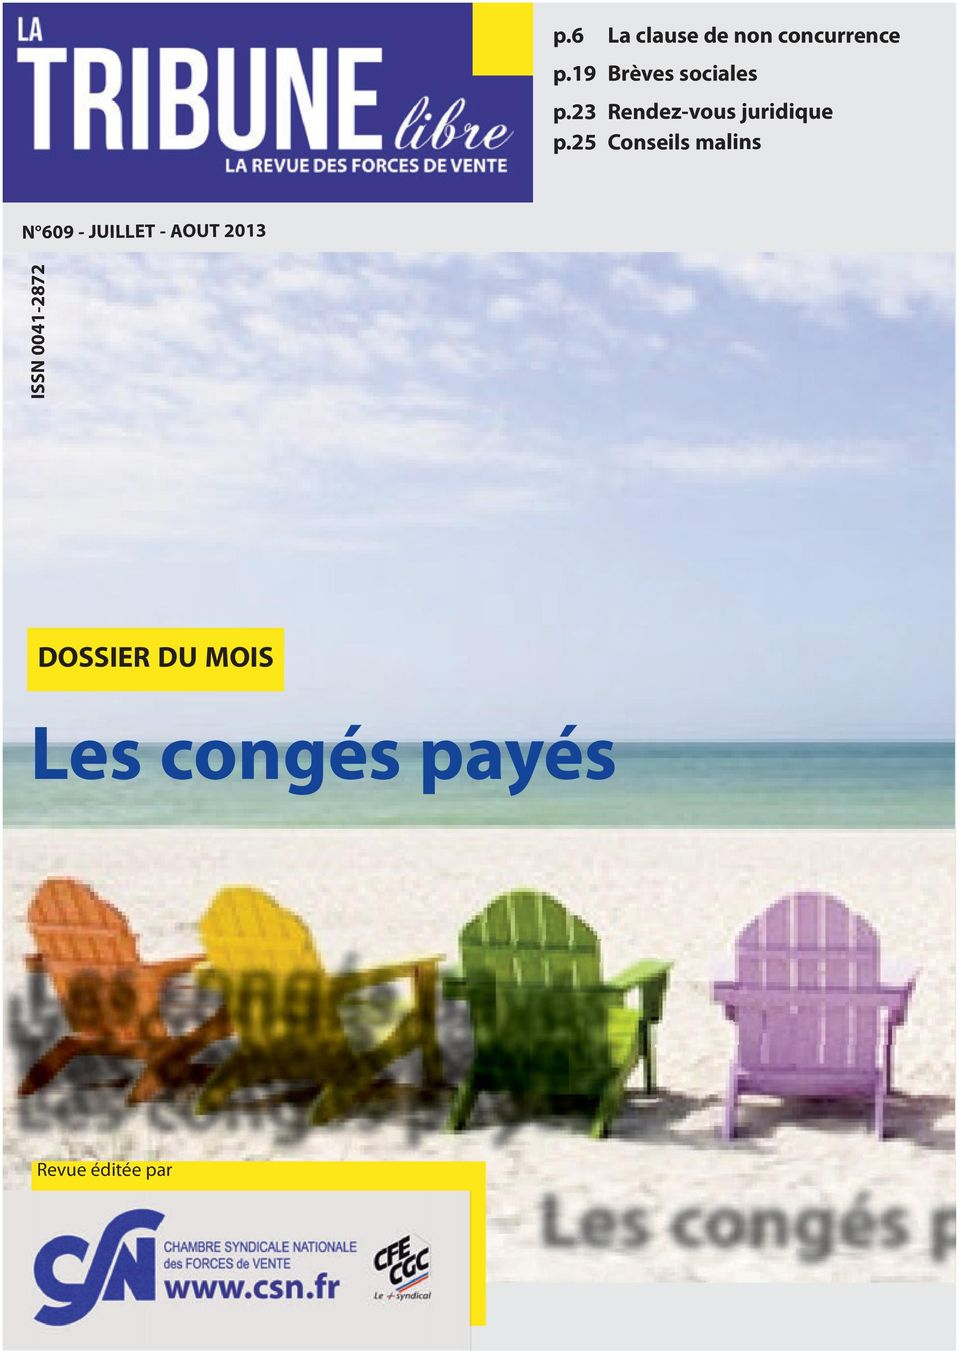 25 Conseils malins N 609 - JUILLET - AOUT 2013